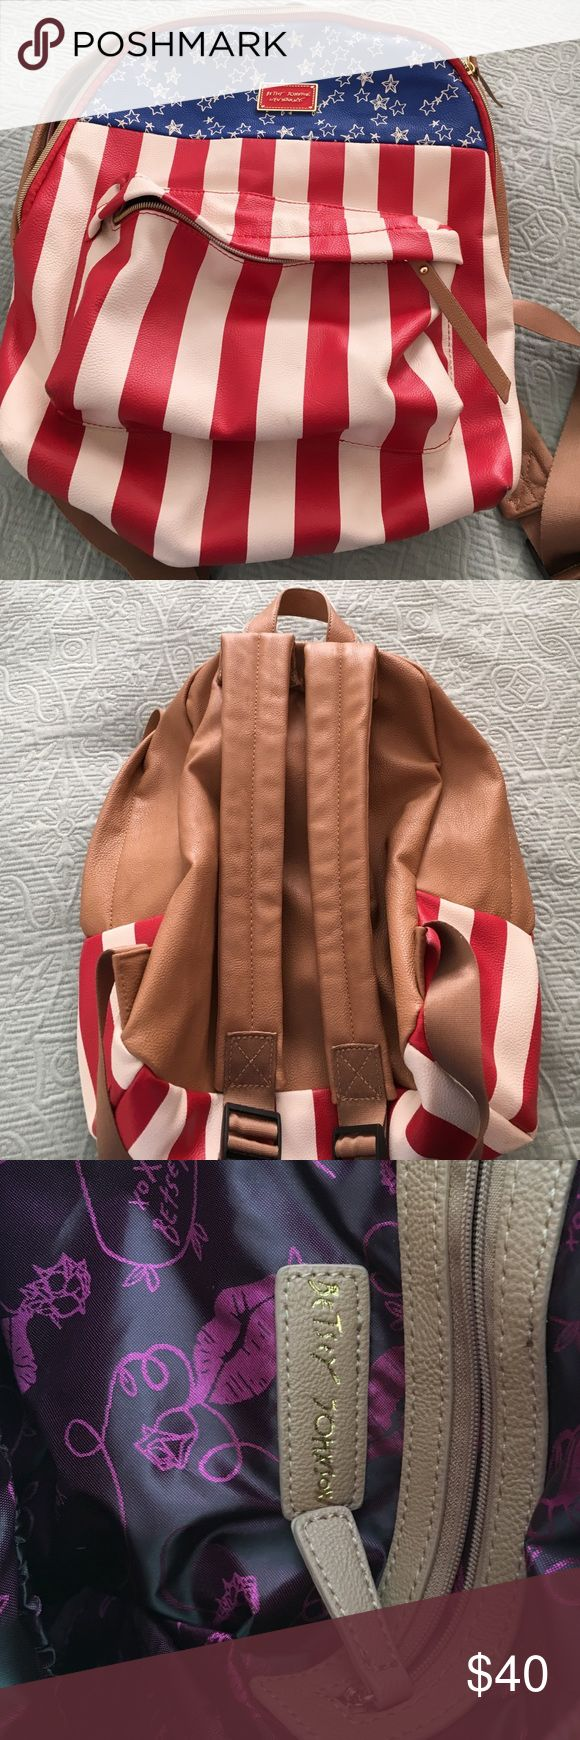 Betsy Johnson Original American Flag backpack Great backpack in mint condition. Leather with stars and strips. Roomy for your belongings and your kids Bags Backpacks